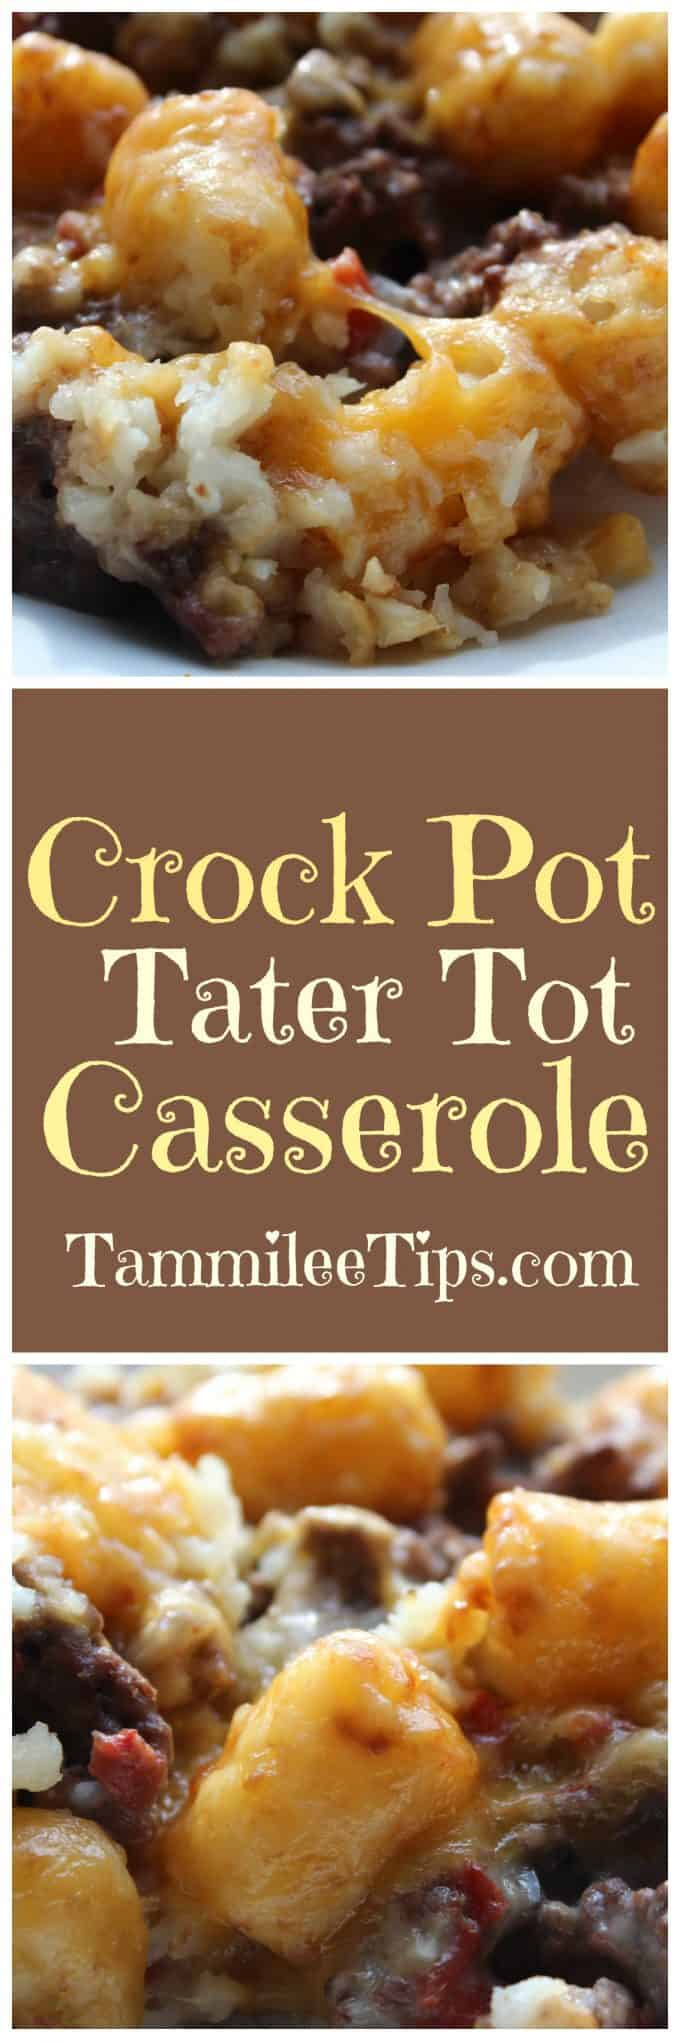 Super easy Crock Pot Tater Tot Casserole recipe made with ground beef is a great family dinner! The slow cooker does all the work and you have an easy dinner you can make ahead and serve.!